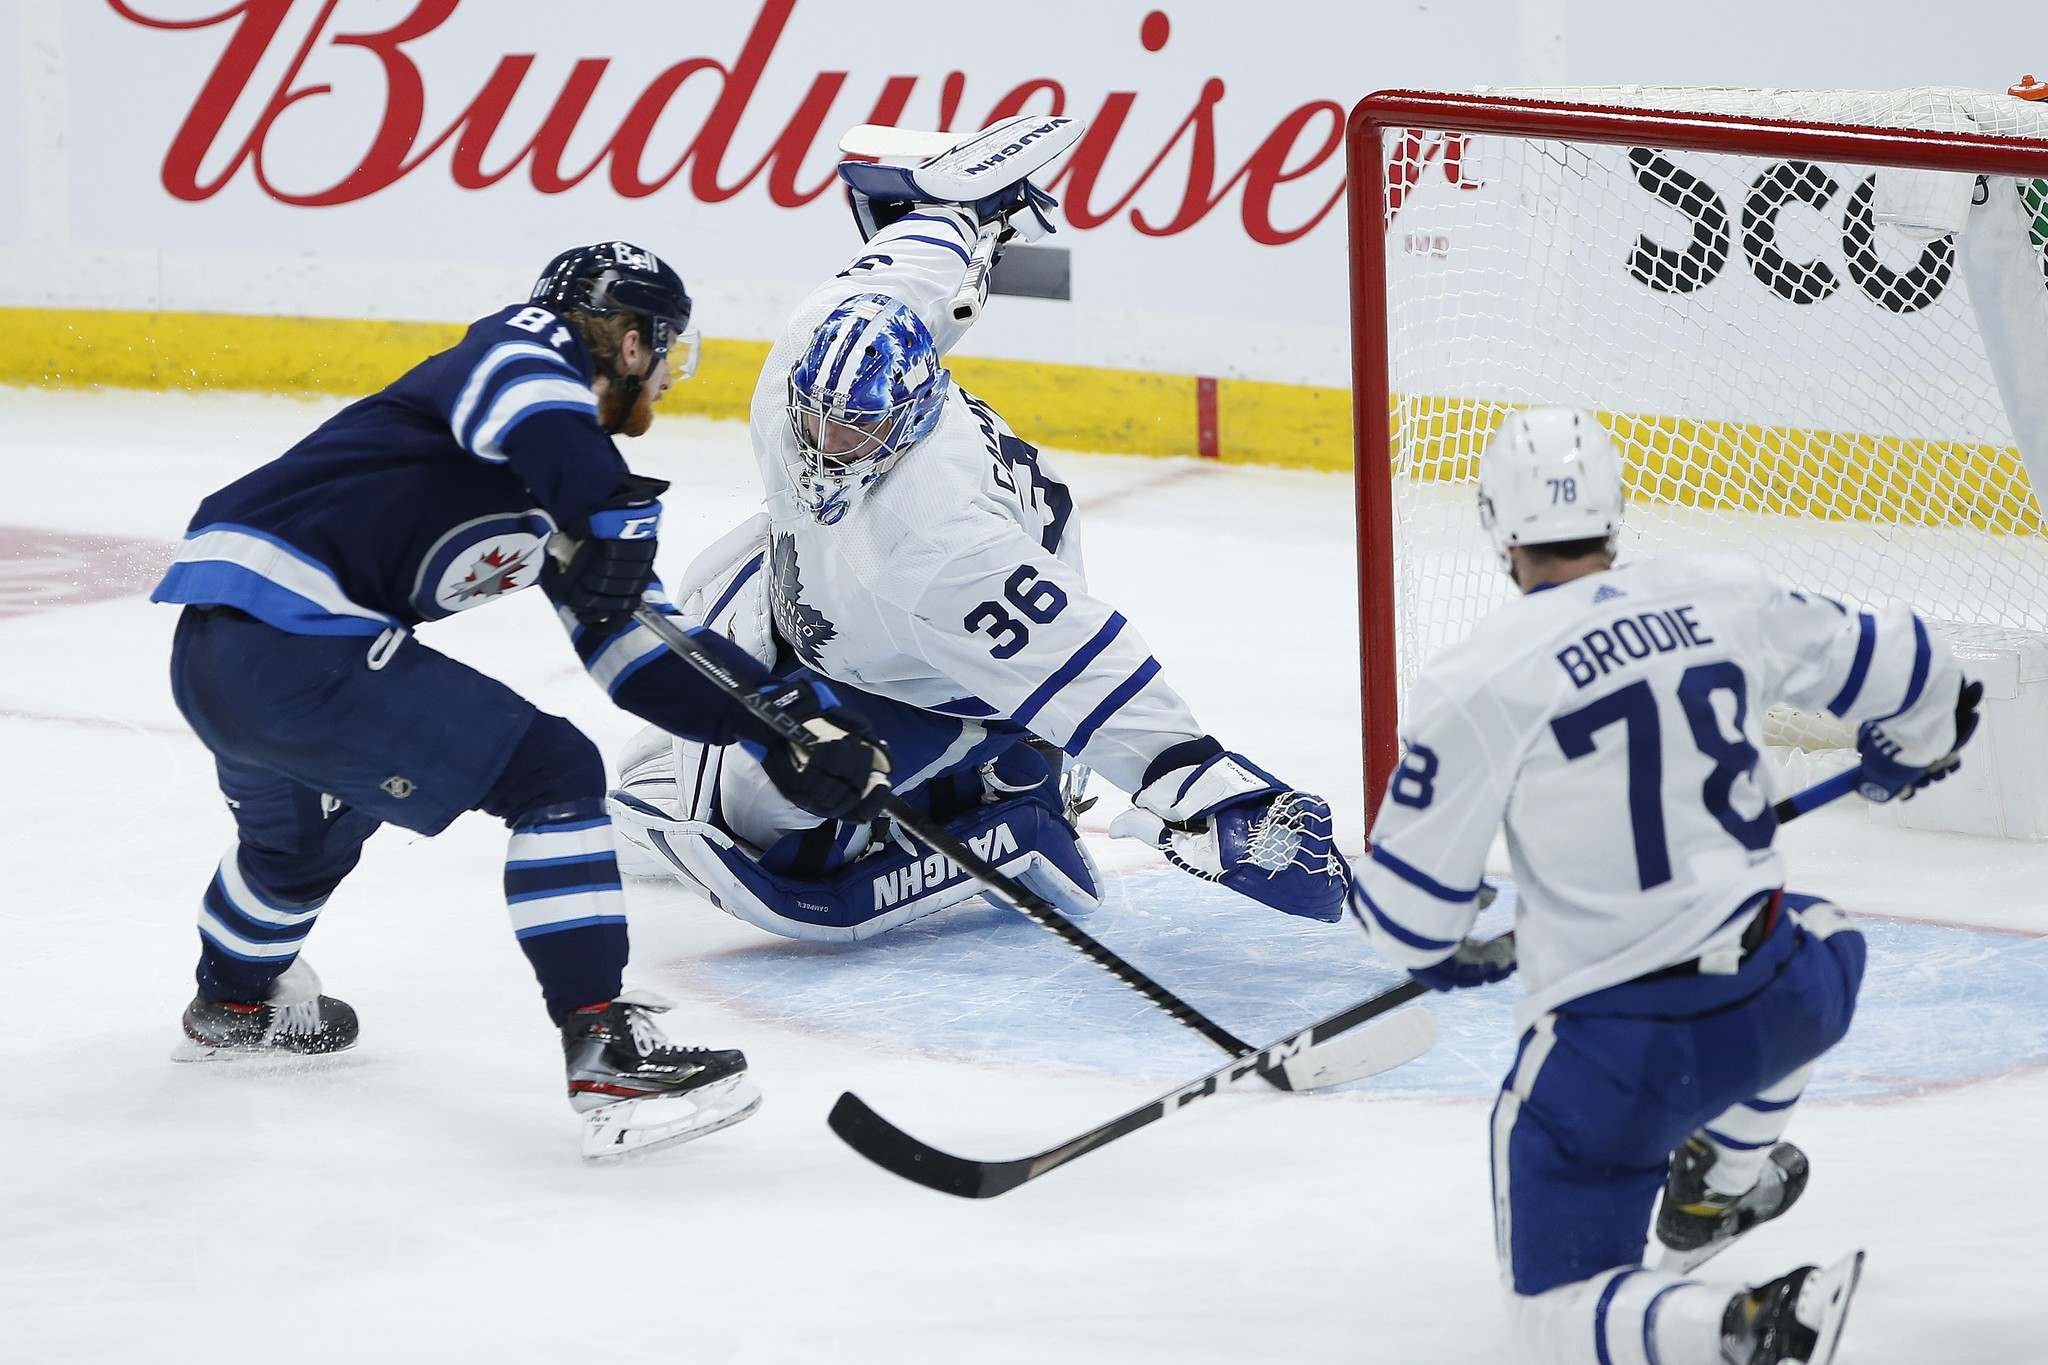 Kyle Connor scores on the backhand against Jack Campbell in the second. (John Woods / The Canadian Press)